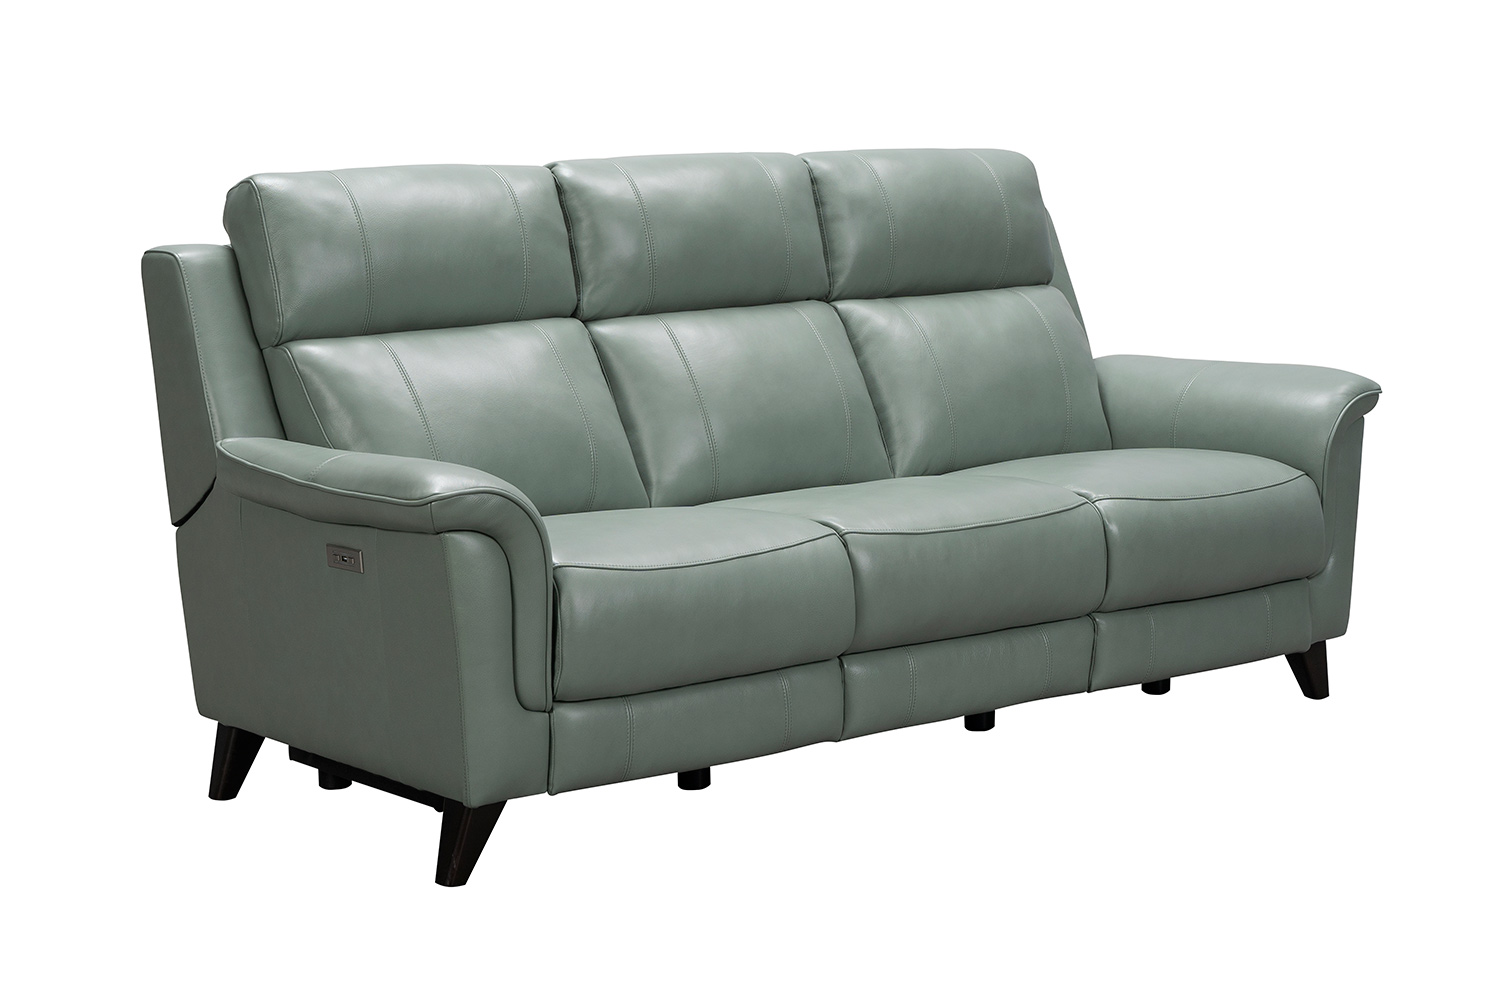 Barcalounger Kester Power Reclining Sofa with Power Head Rests - Lorenzo Mint/Leather match